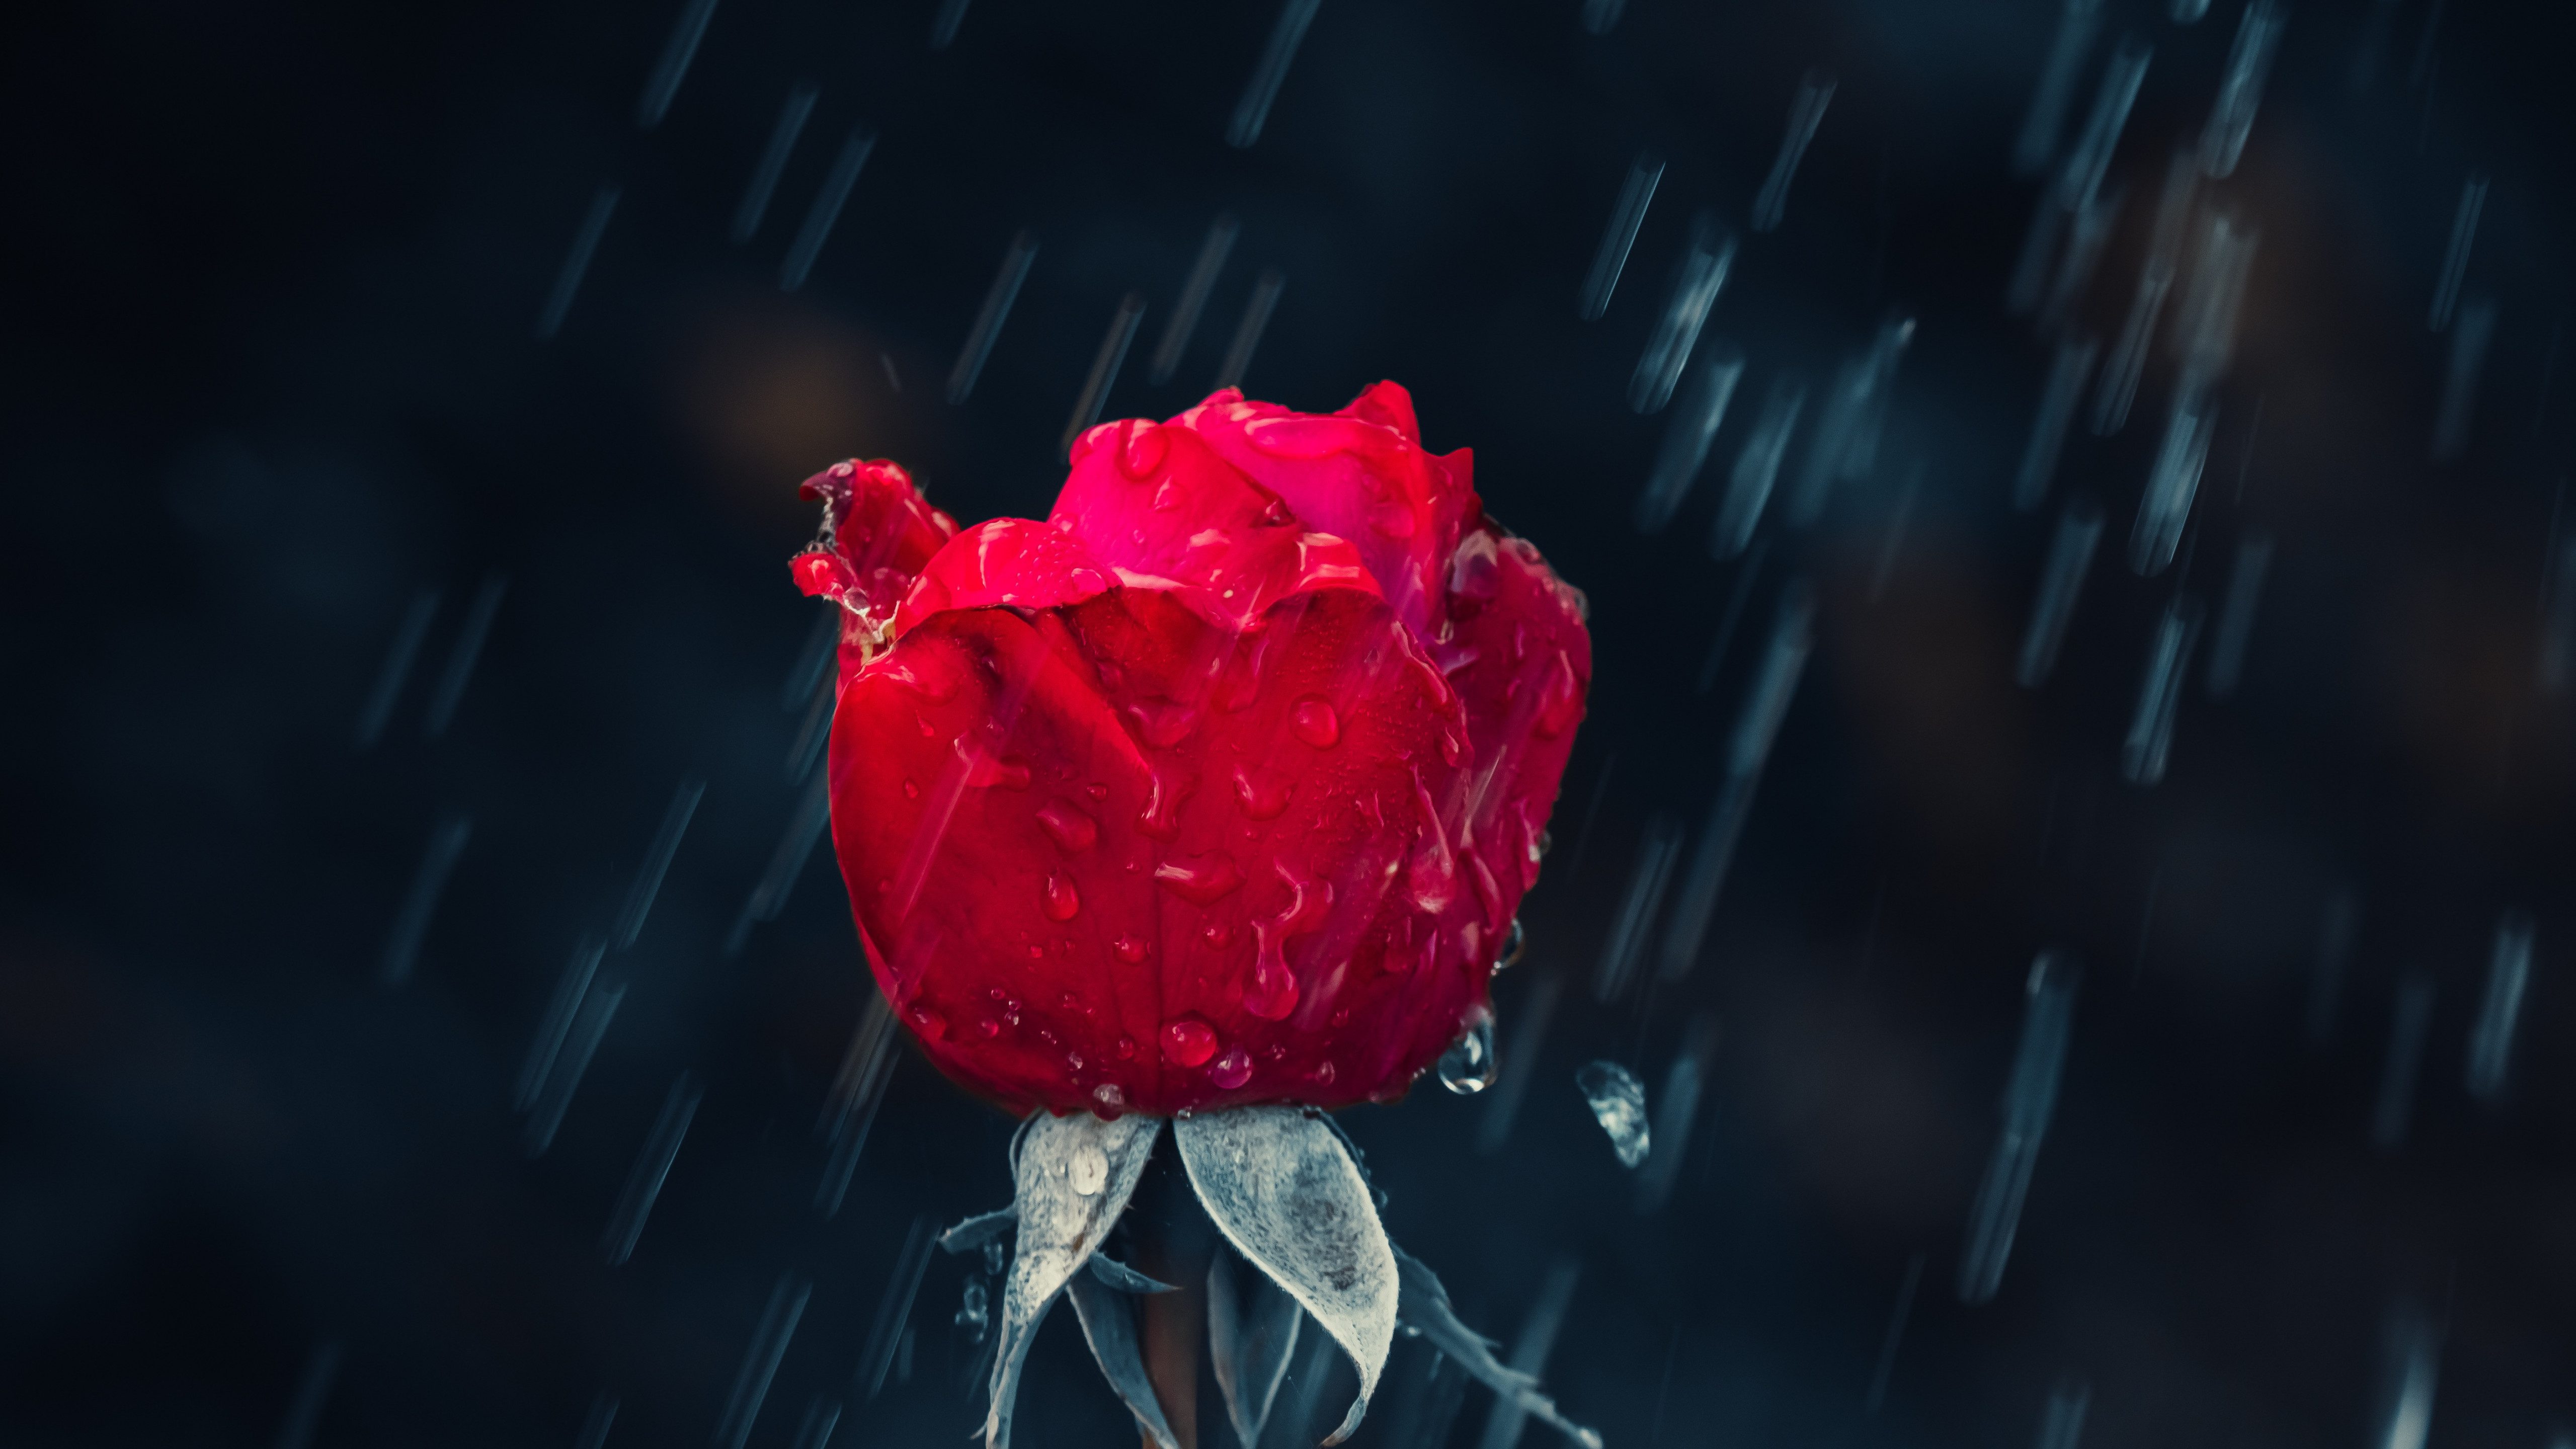 Red rose and raindrops wallpaper 5120x2880